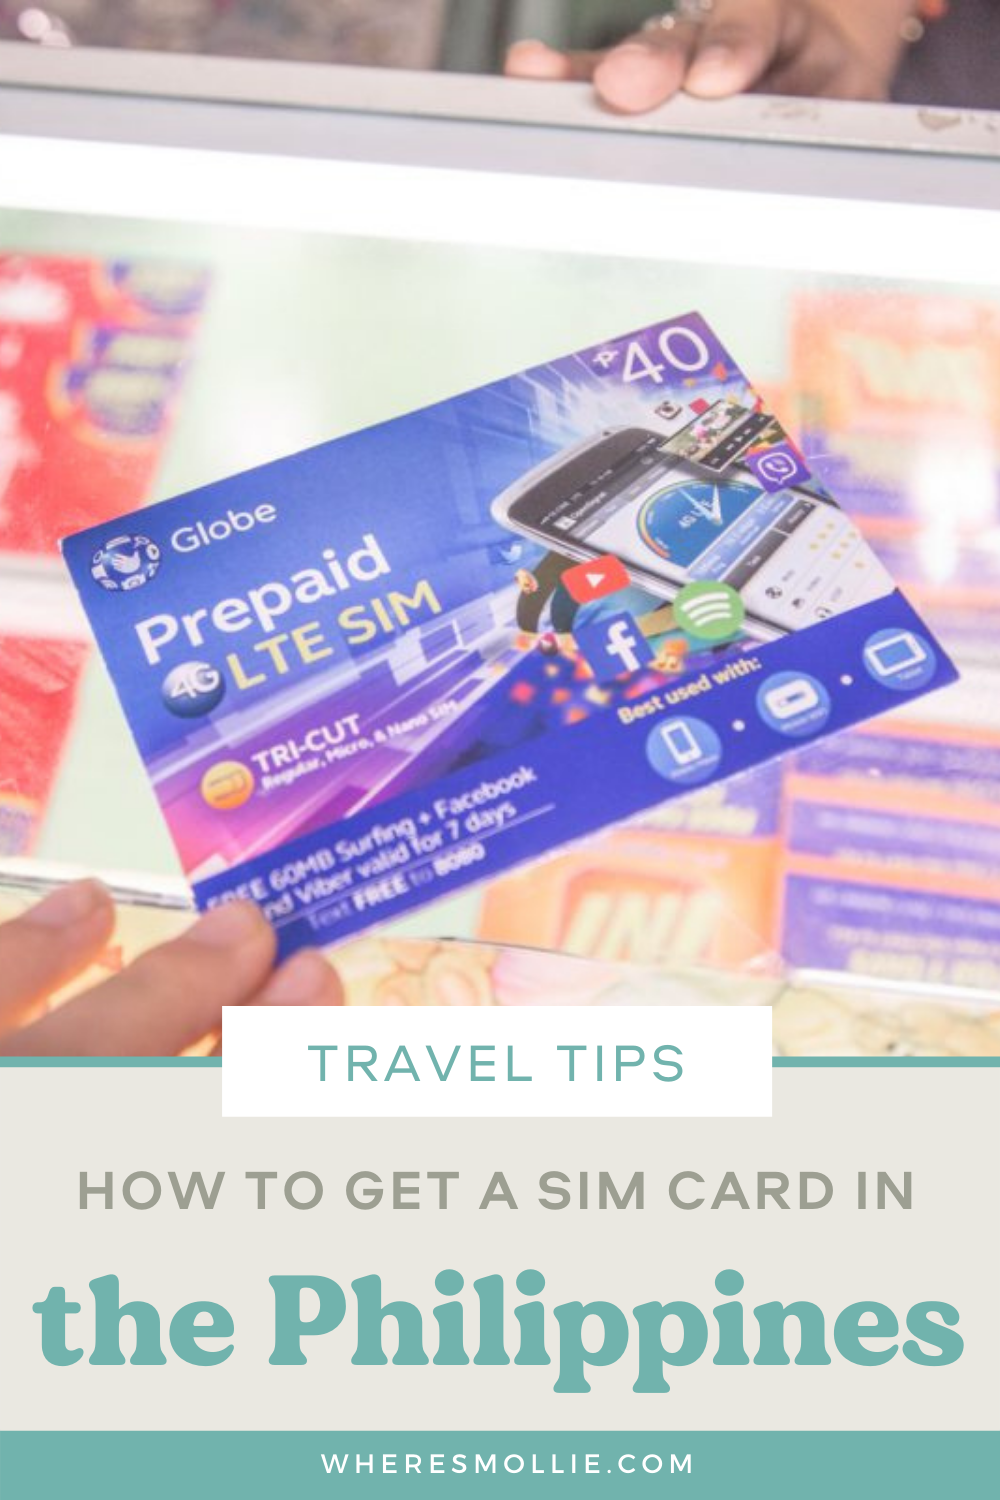 Getting a SIM card in the Philippines